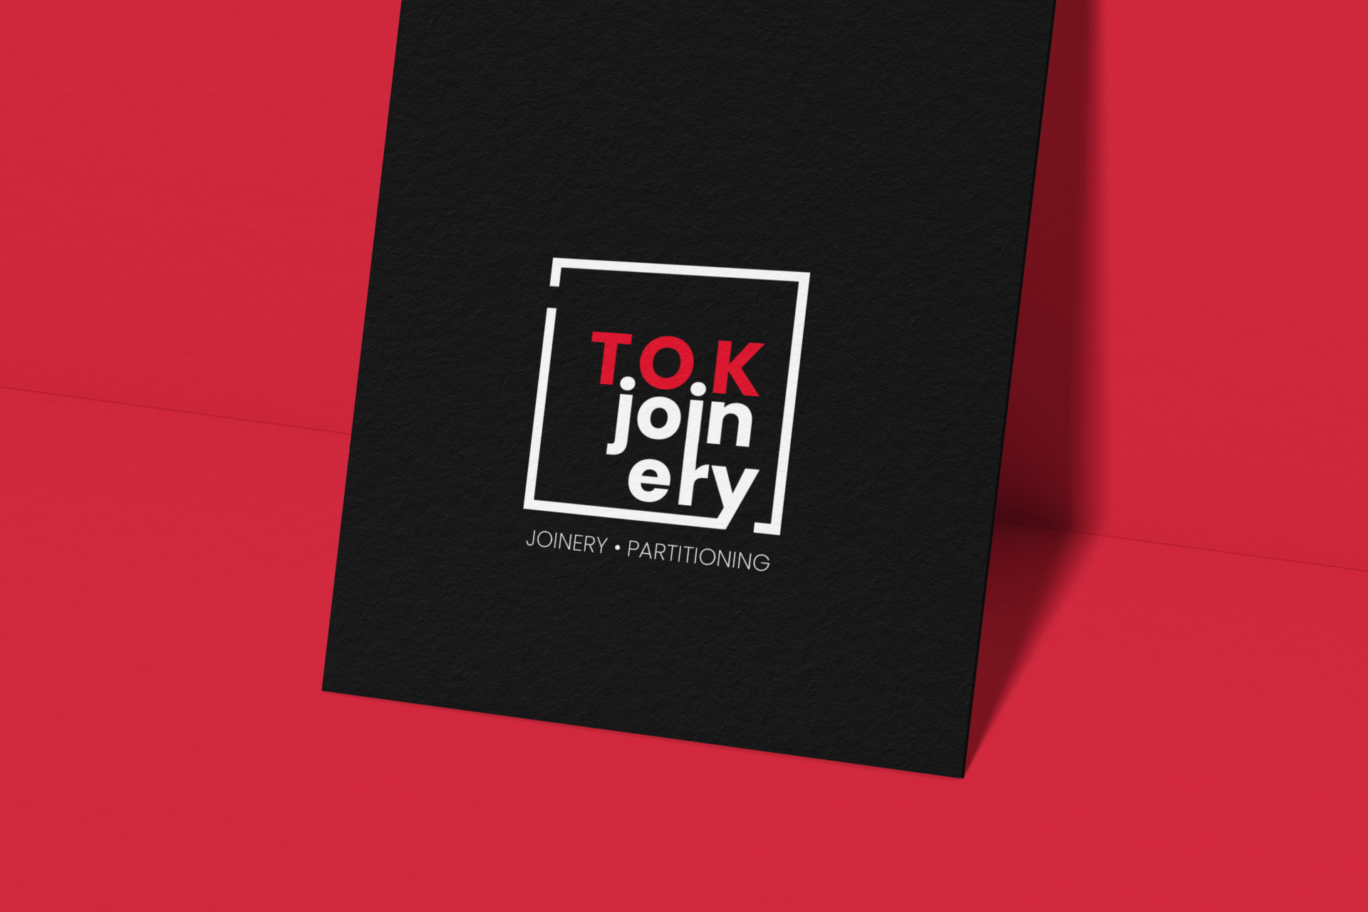 TOK Joinery